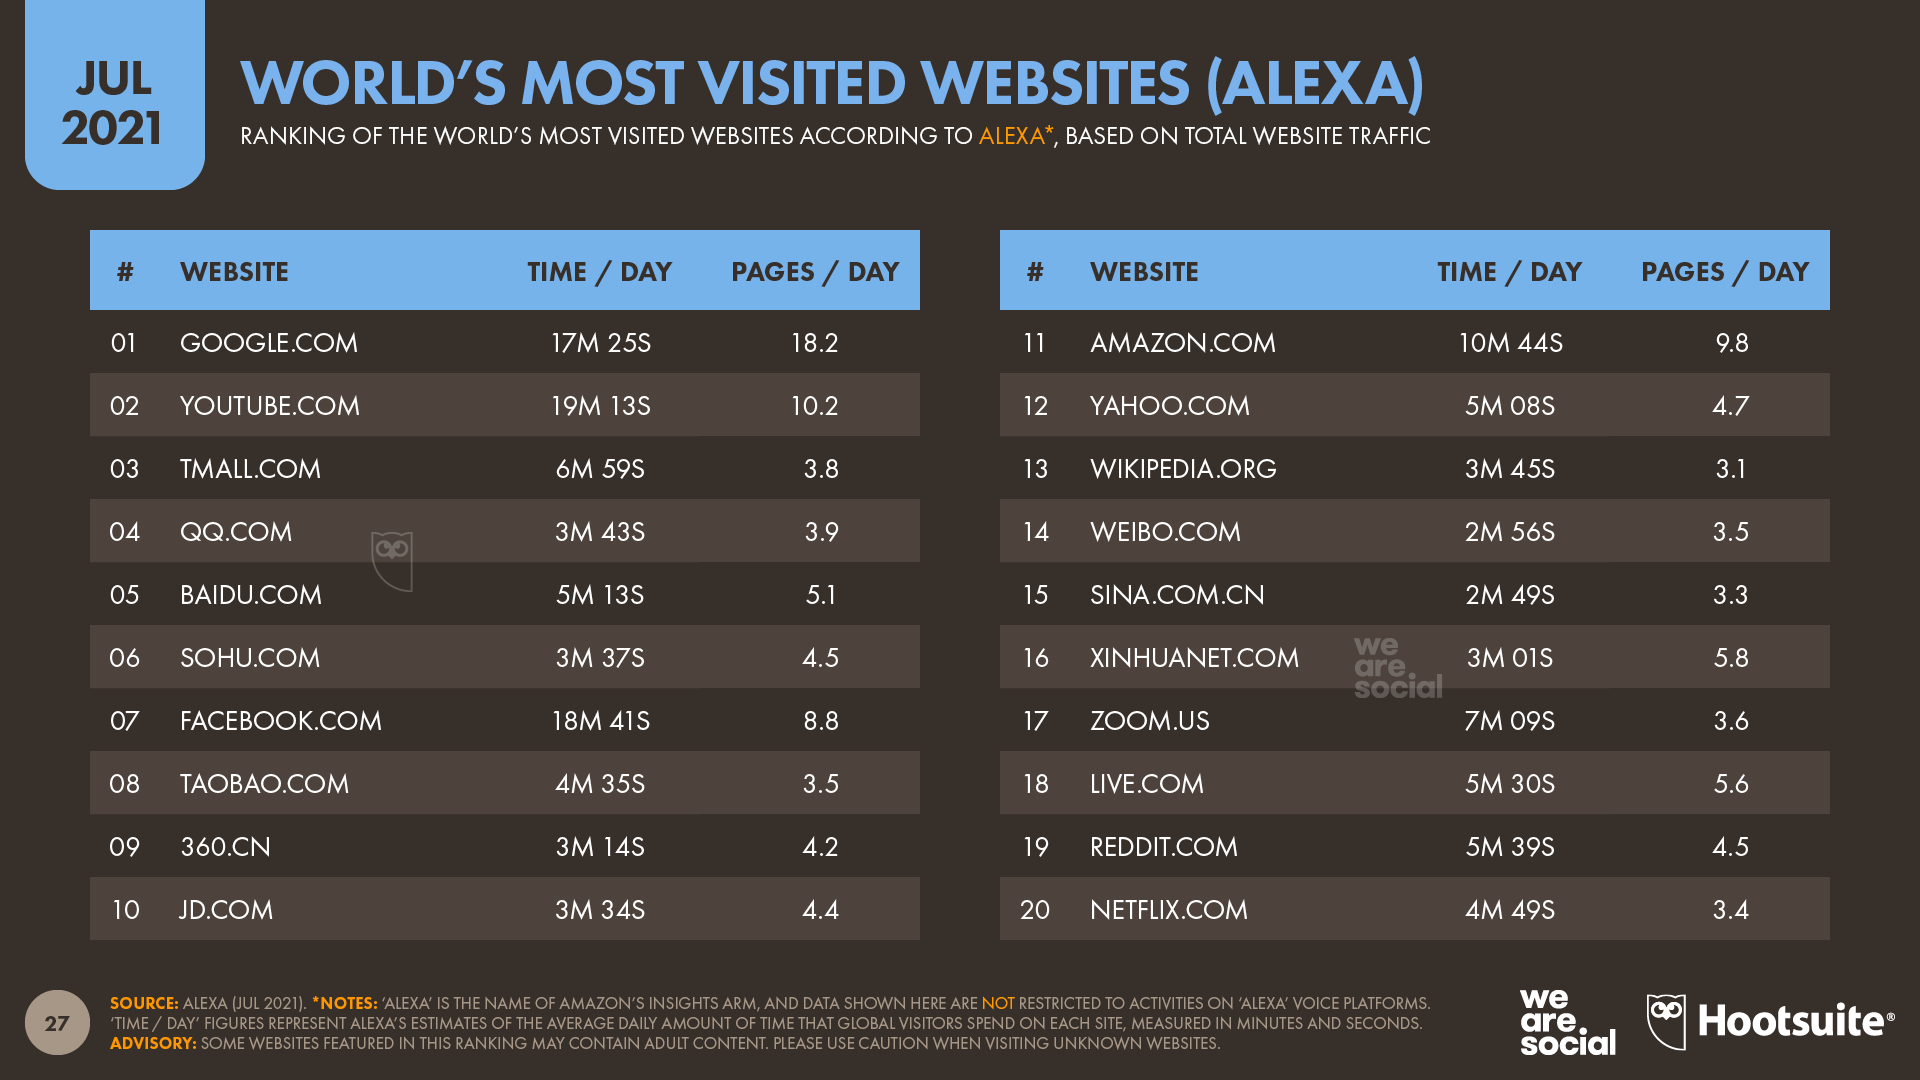 chart showing world's most visited websites (according to Alexa) as of July 2021